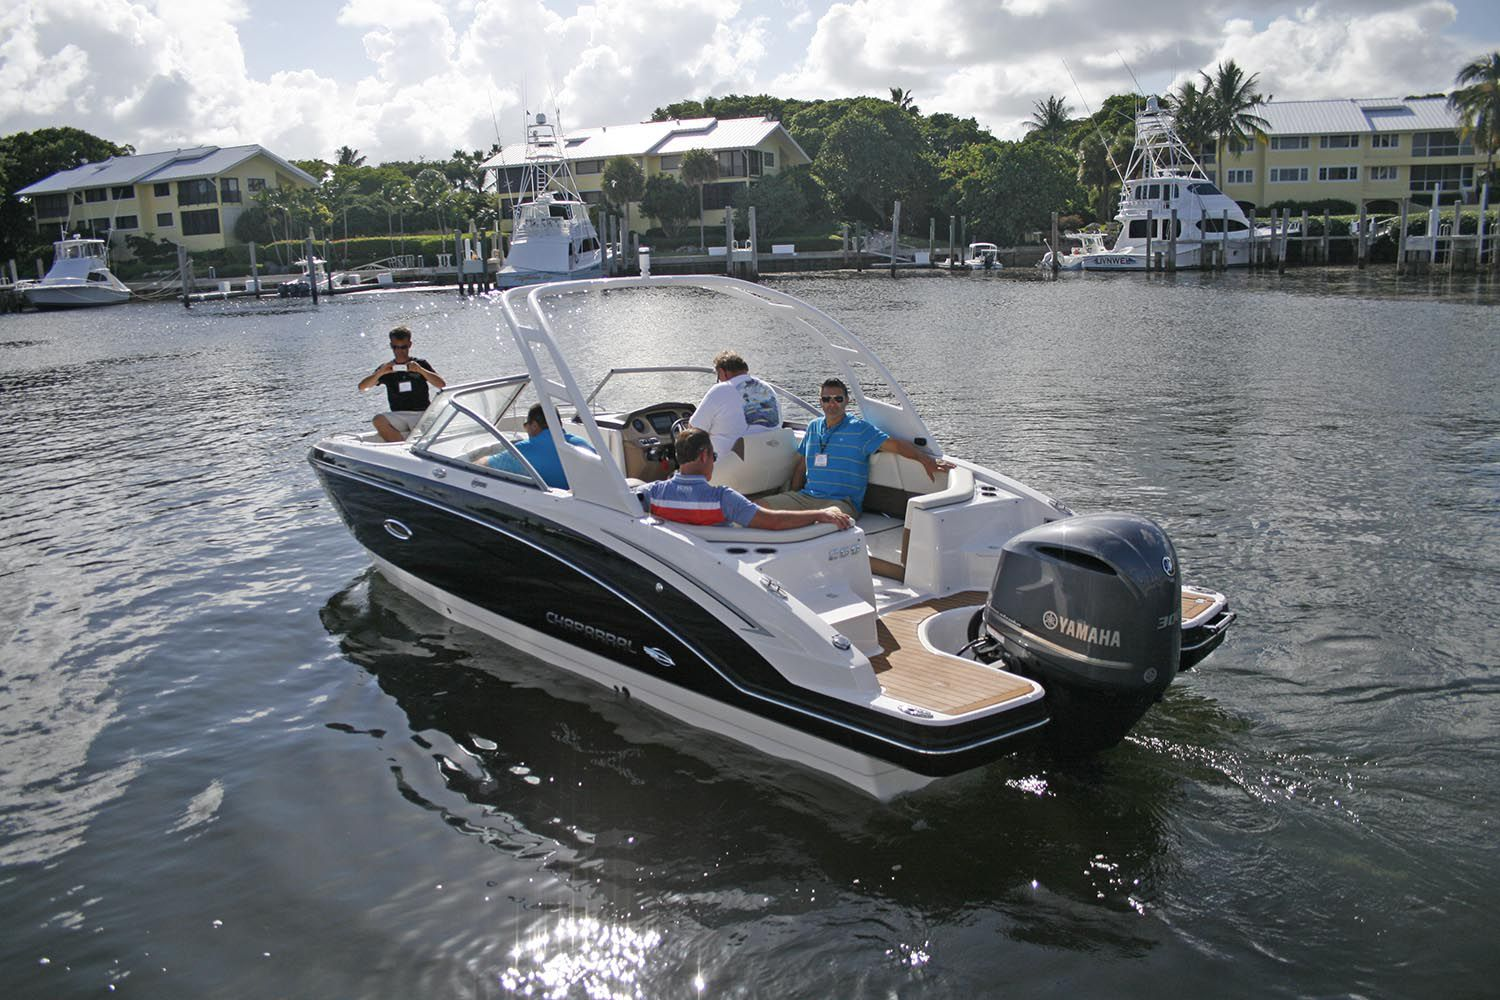 Chaparral Boats debuts 250 Suncoast Outboard Deckboat at Dealer Meeting